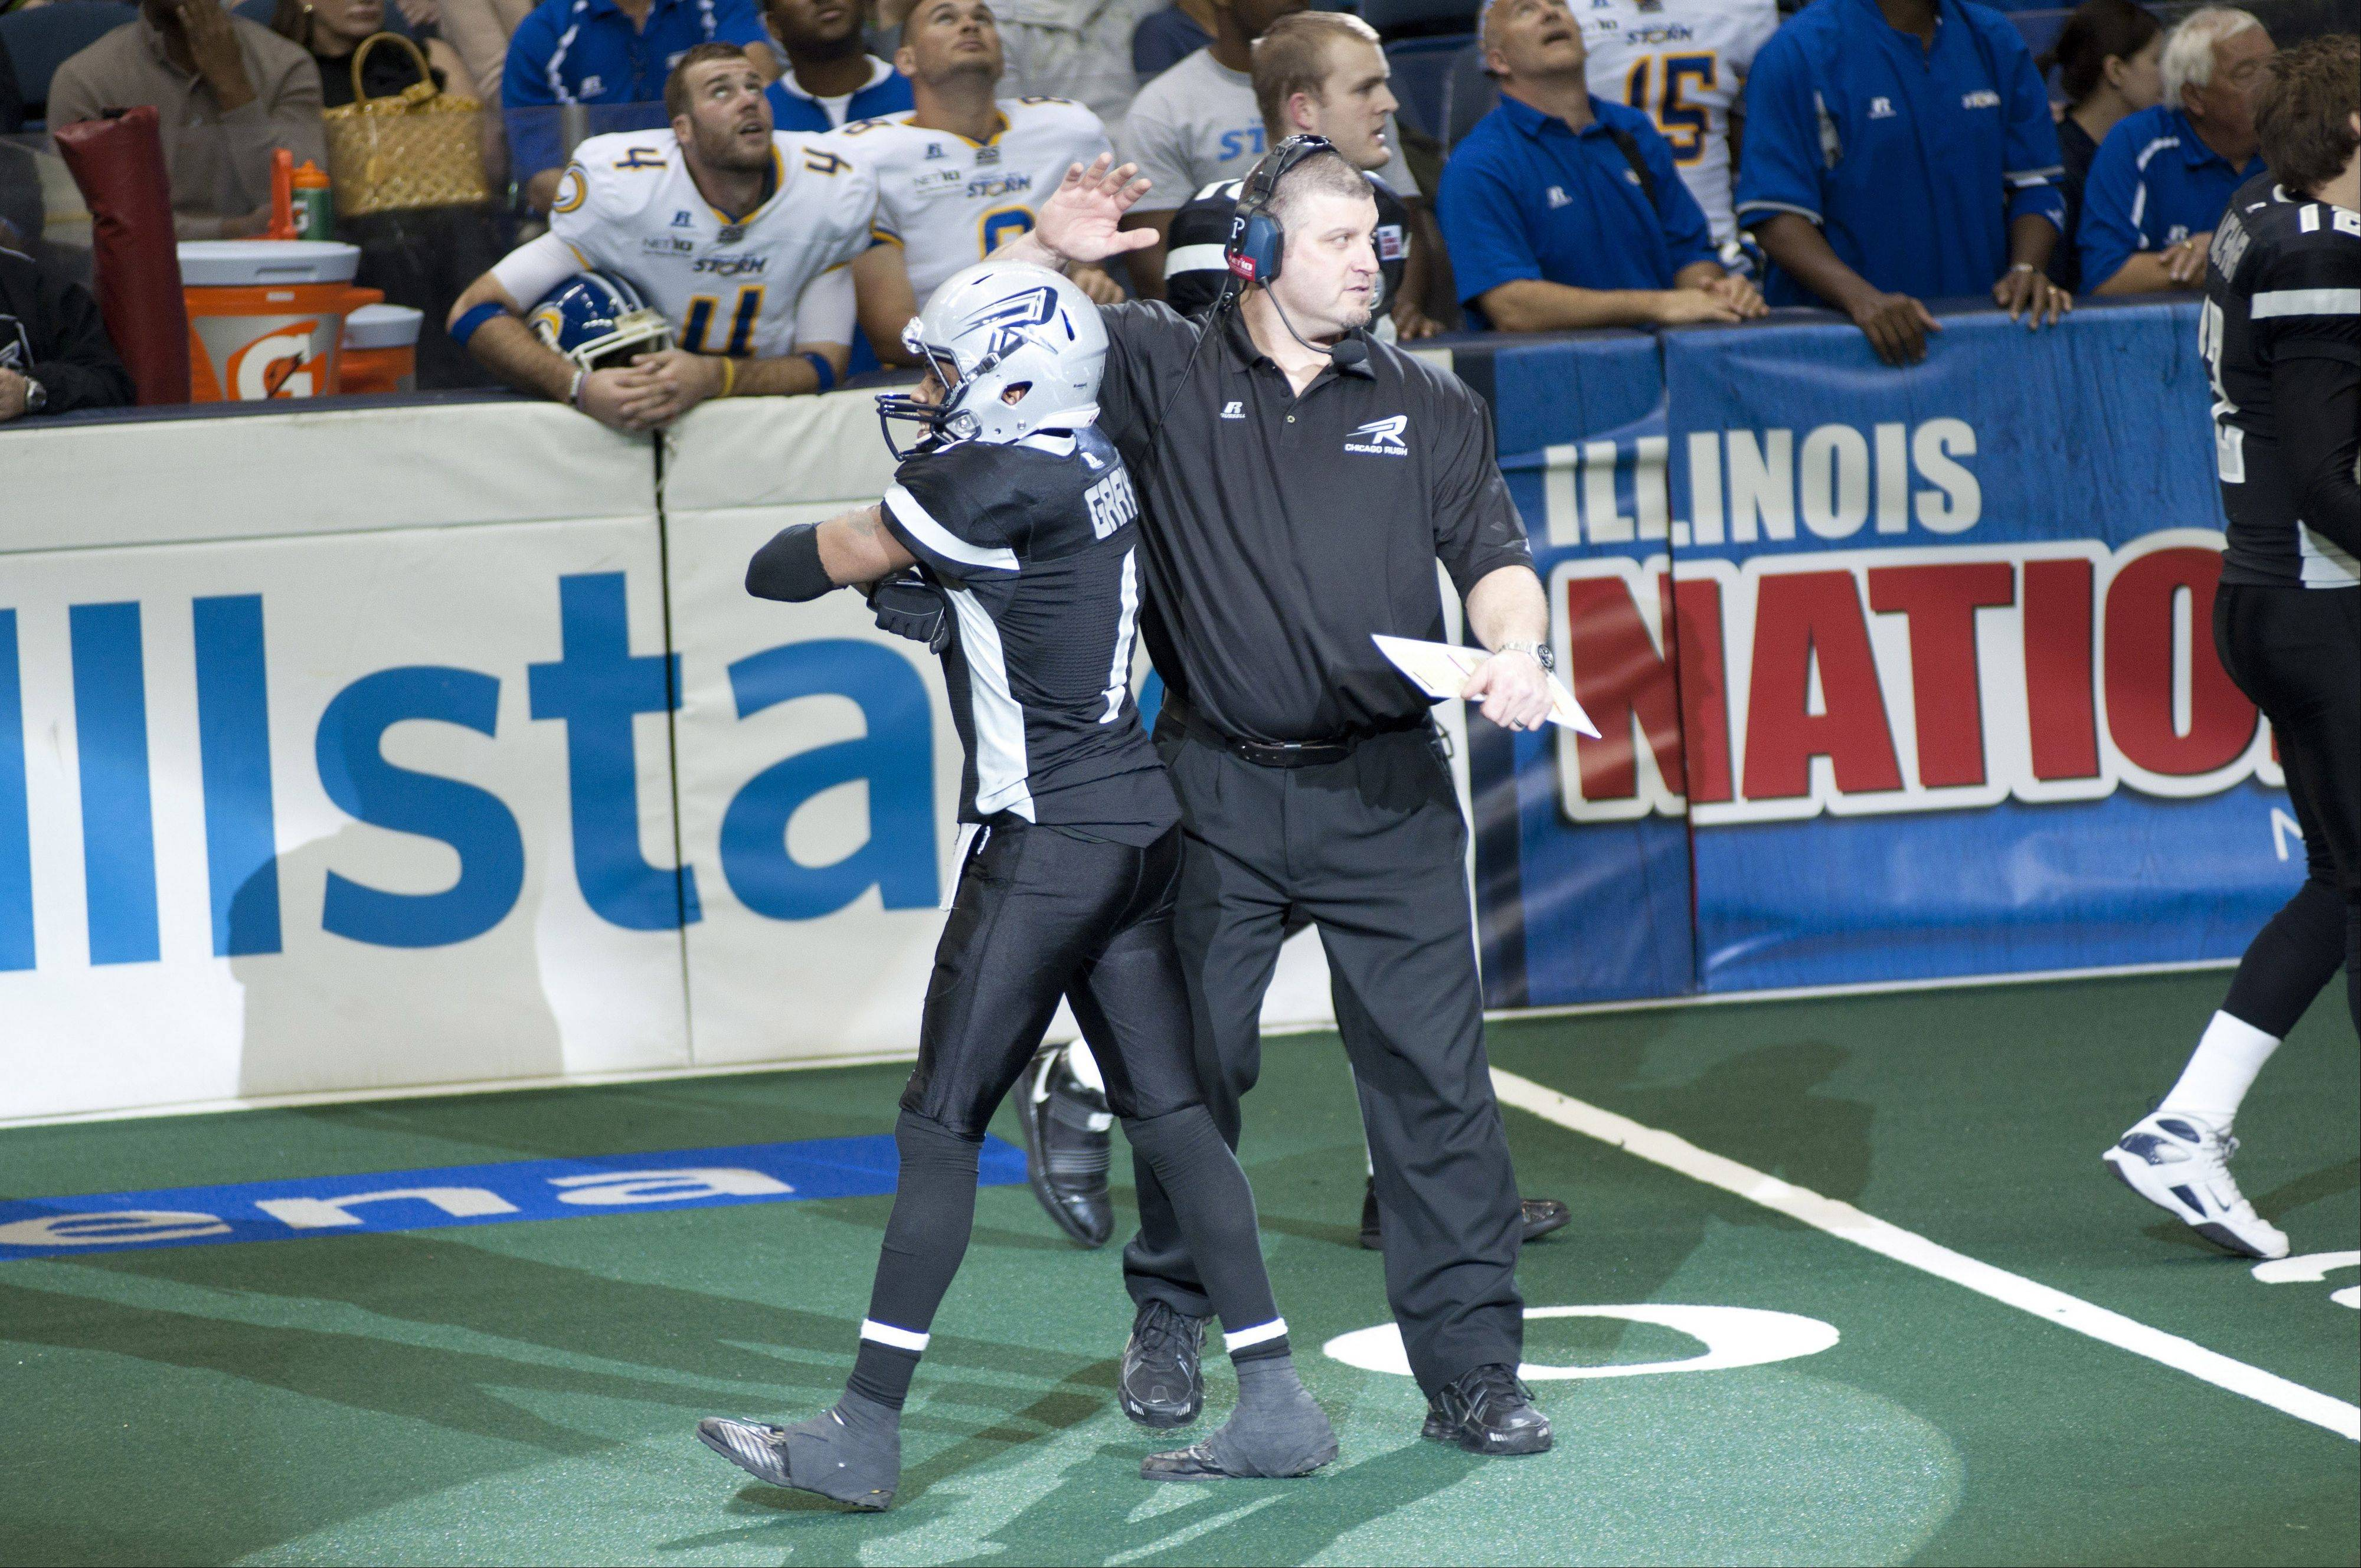 Chicago Rush head coach Bob McMillen, here celebrating a touchdown with wide receiver Reggie Gray while keeping his eyes on the next play, missed the playoffs this season.